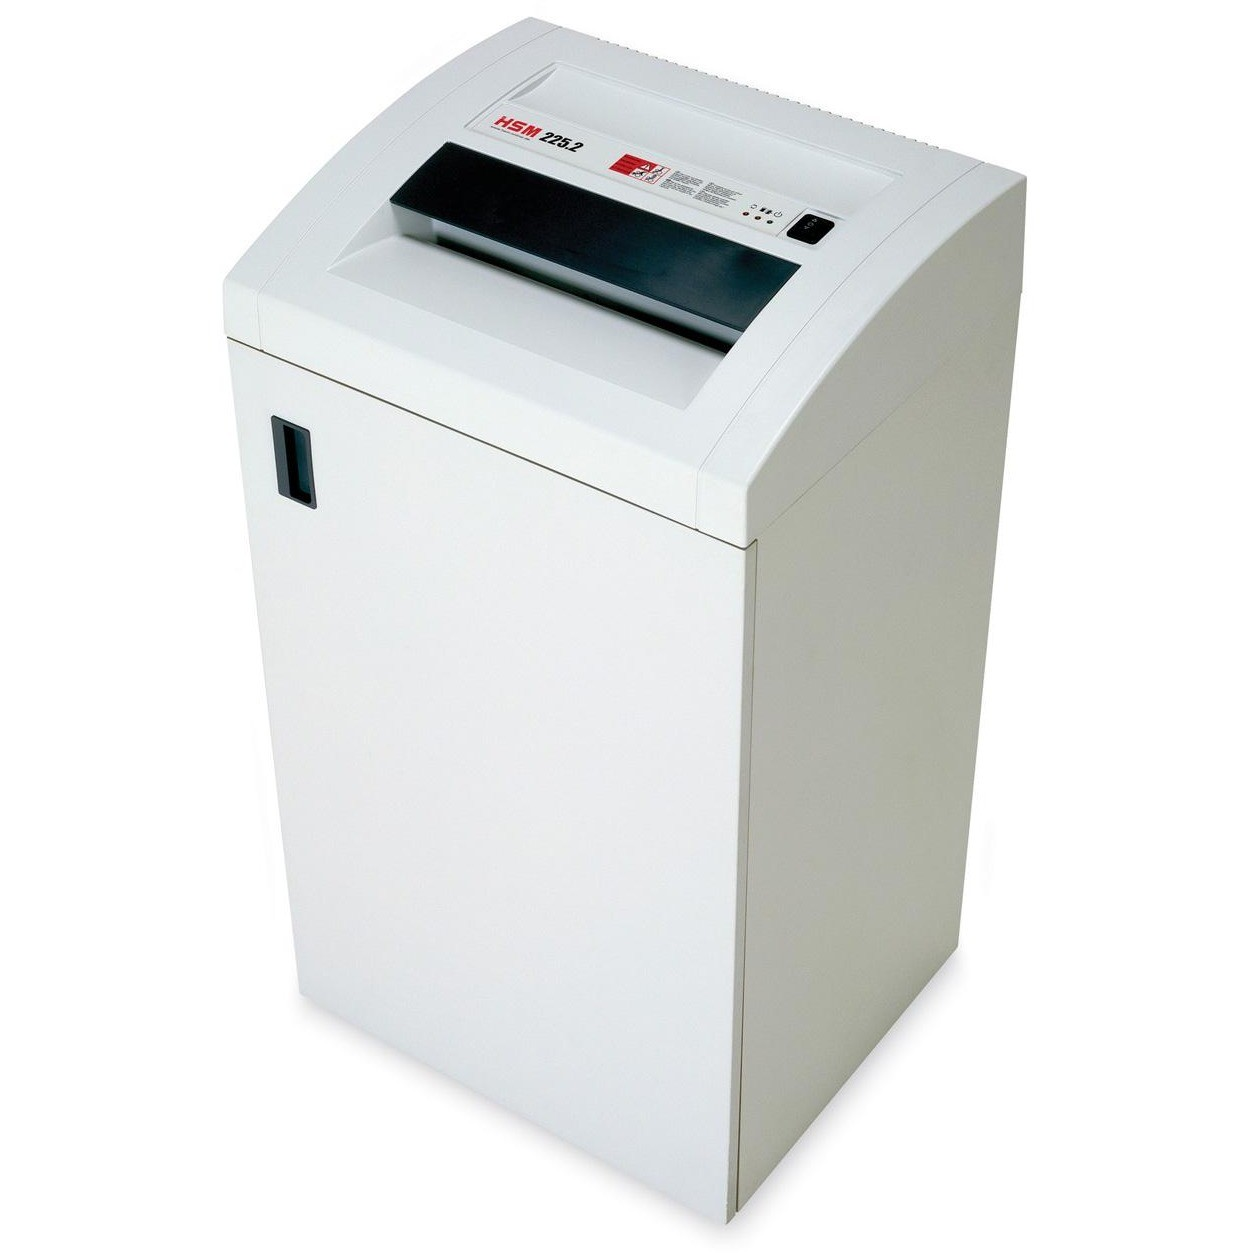 HSM14584 HSM Classic 225.2 HS L6 Cross-Cut Shredder